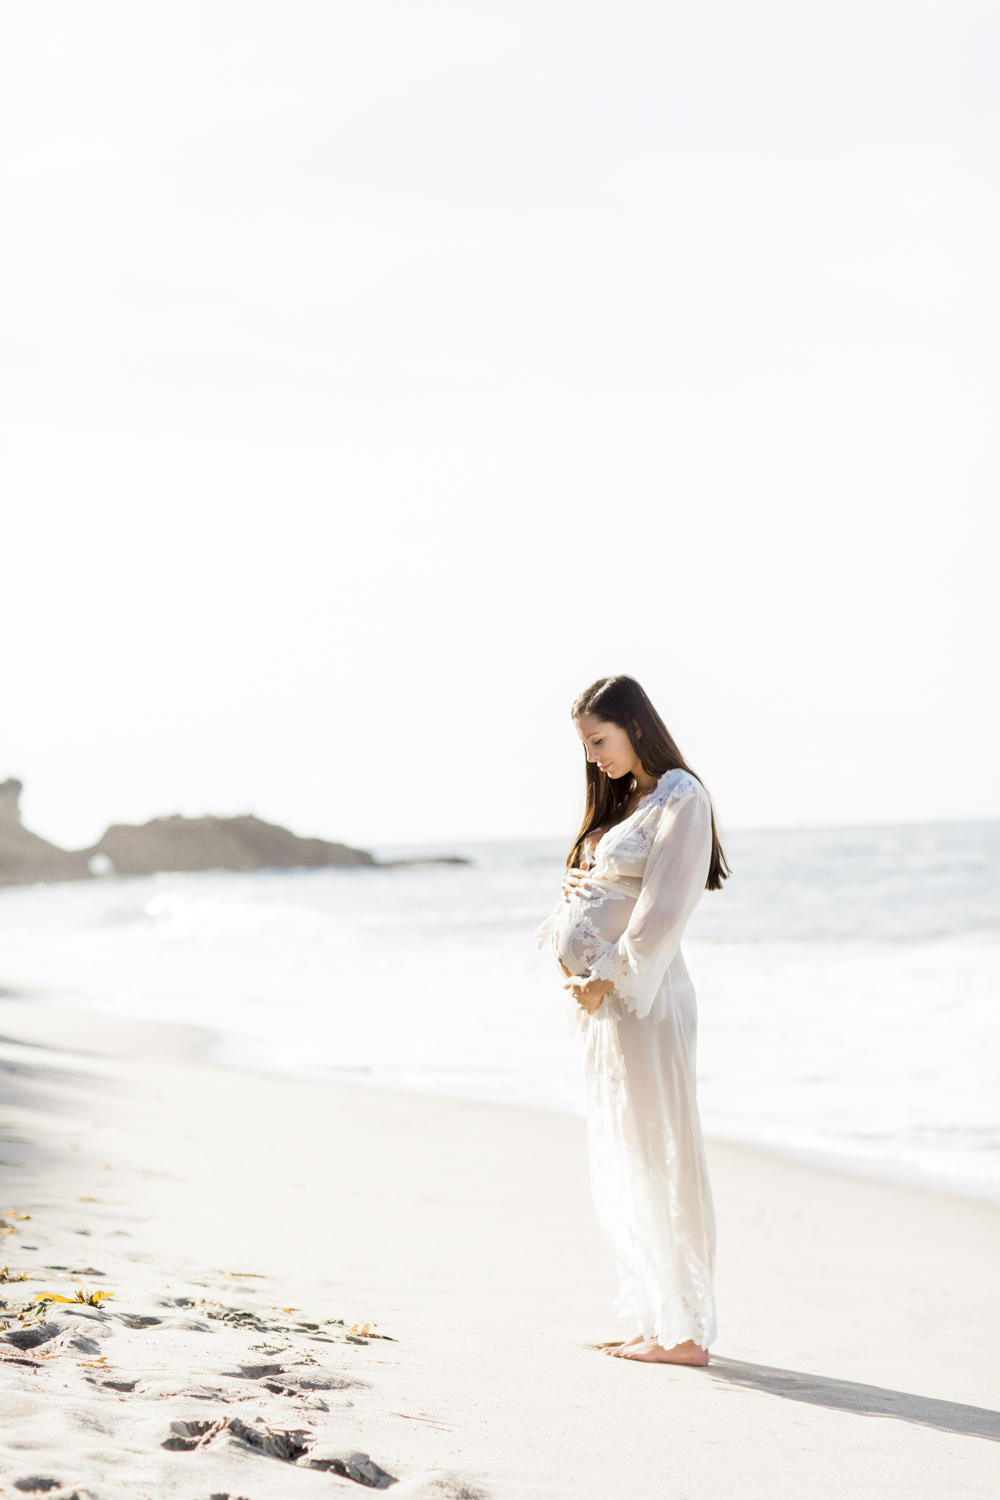 LagunaBeach_Family_MaternityShoot_SidneyKraemer_Low-5.jpg